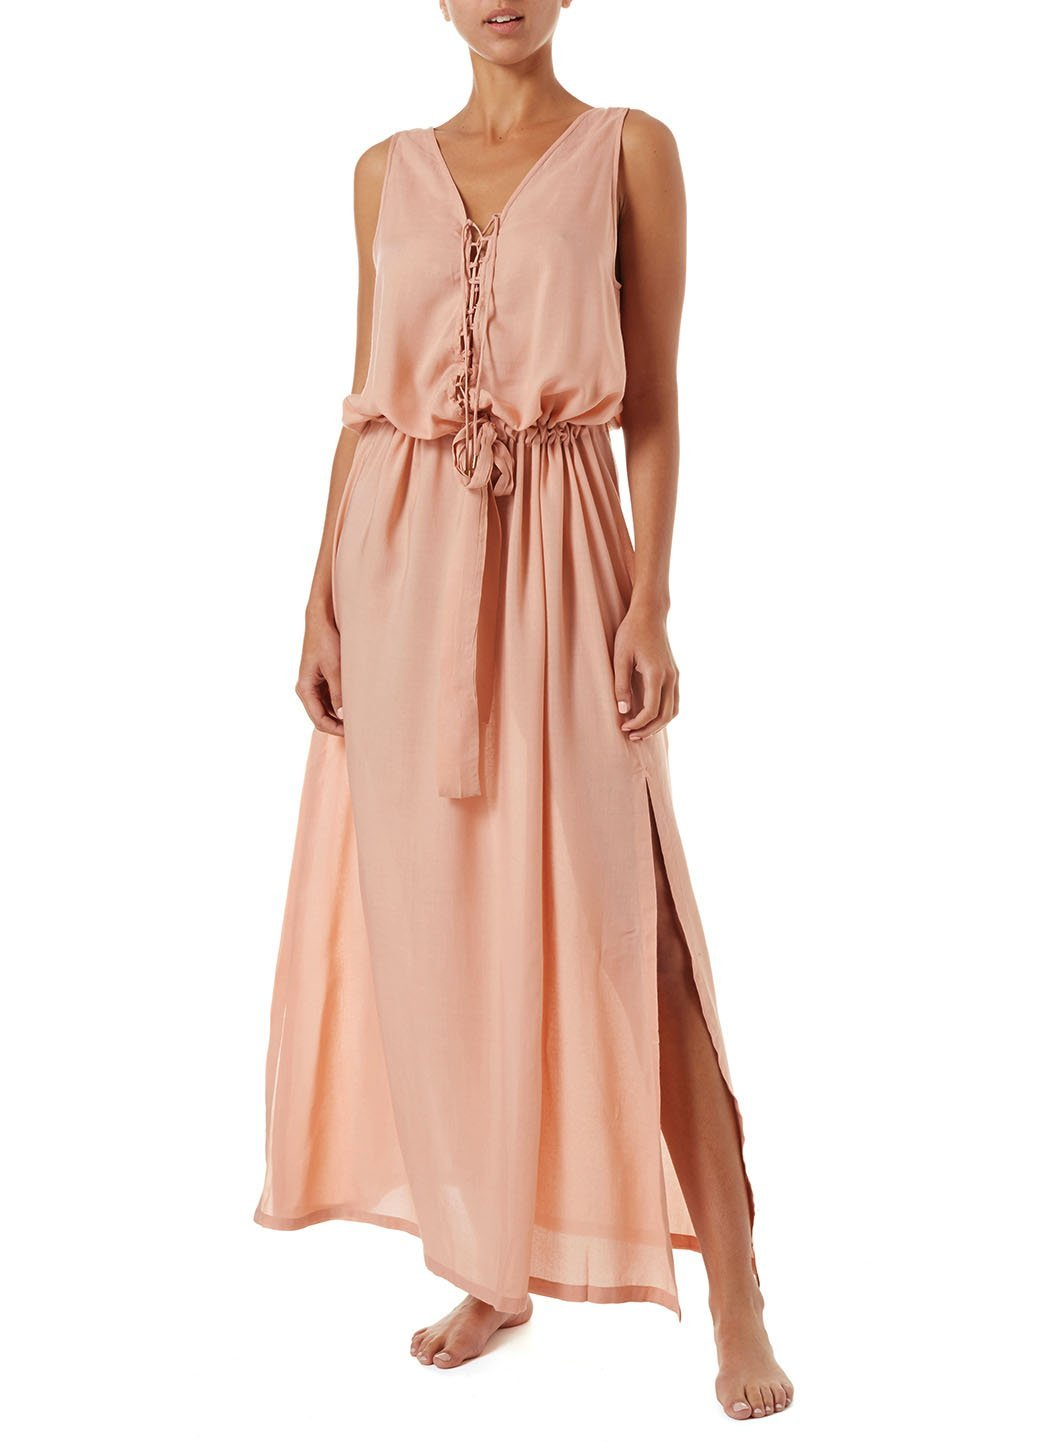 jacquie tan laceup belted maxi dress 2019 F